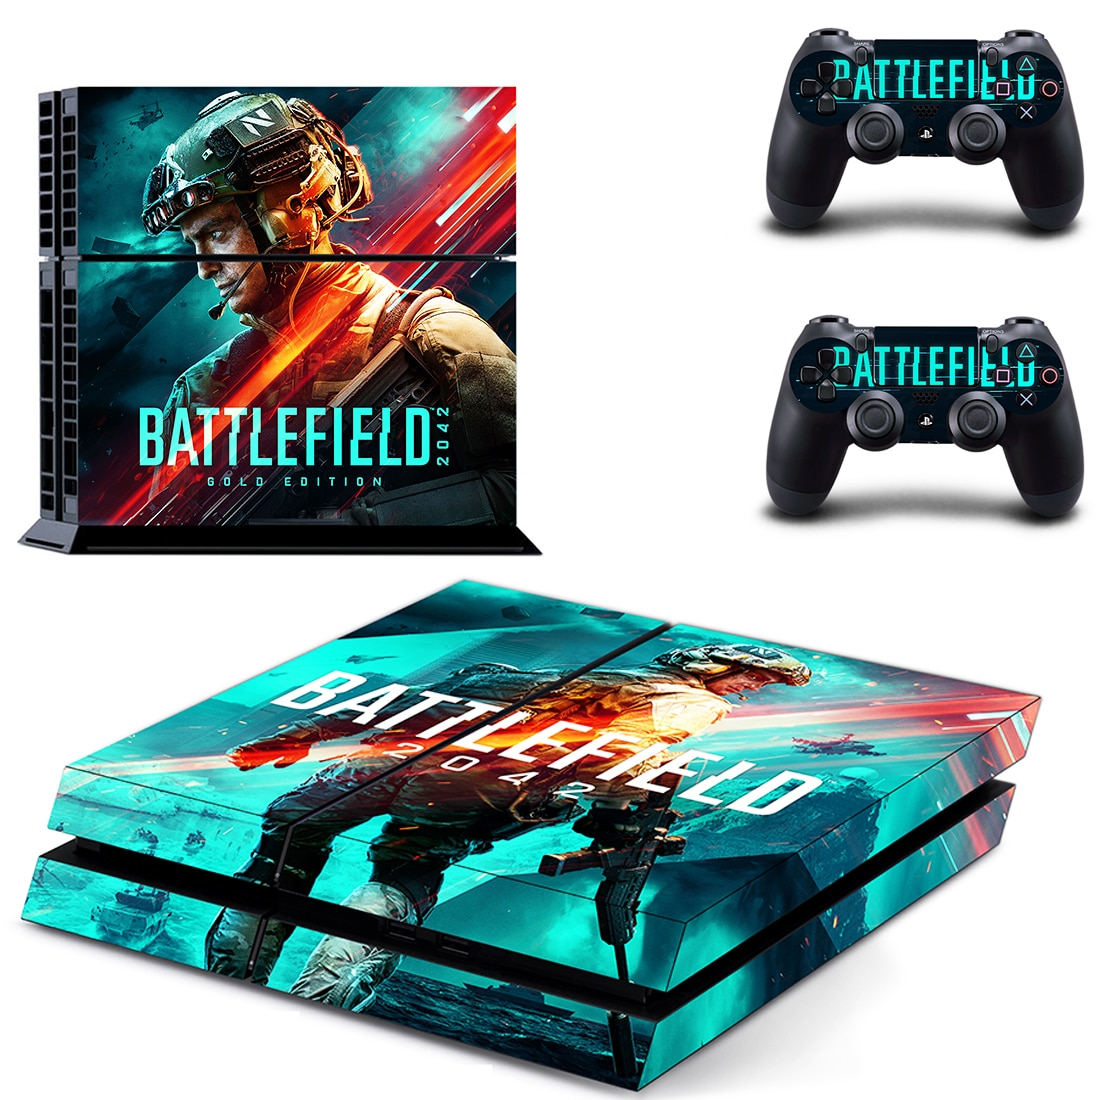 Battlefield 2042 PS4 Stickers Decals Cover For PlayStation 4 PS4 Console and Controller Skins Vinyl